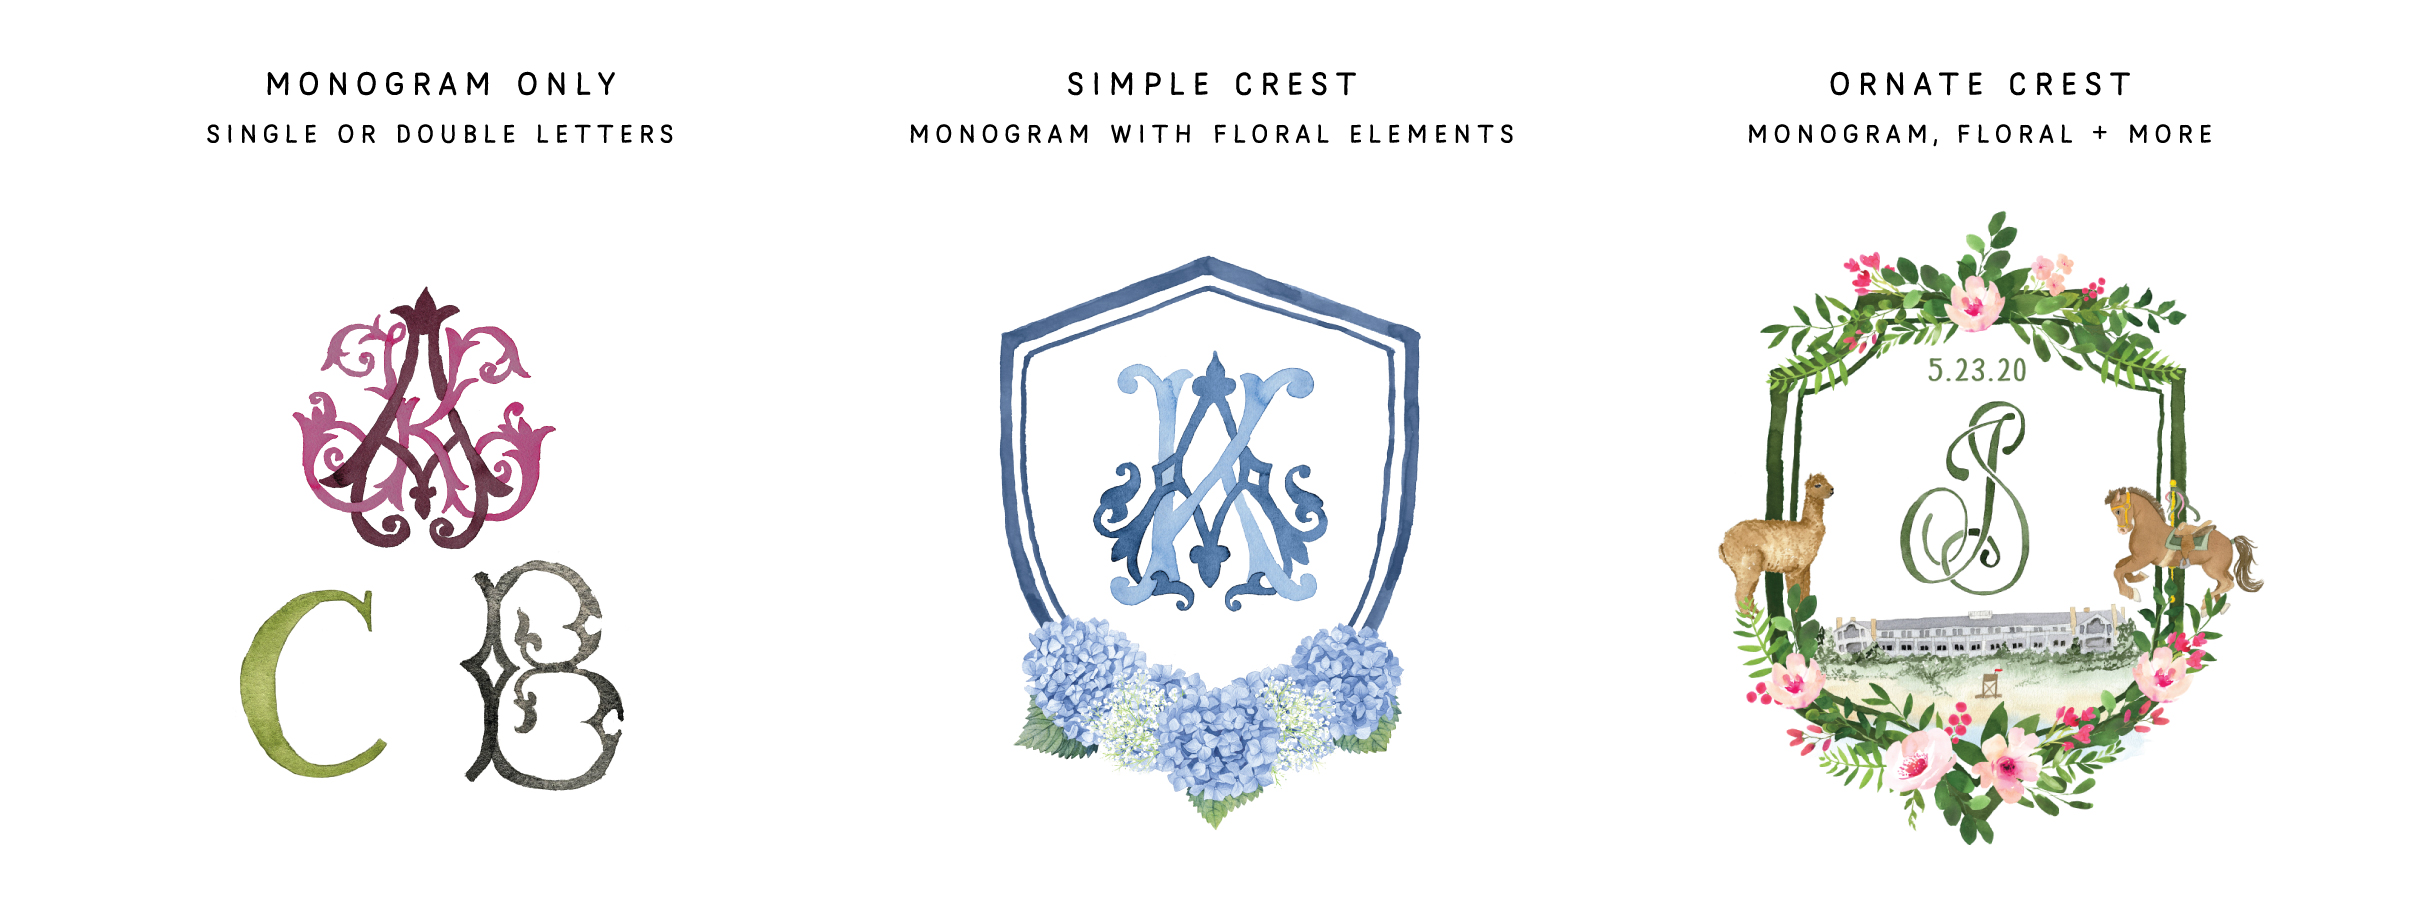 Custom Watercolor Crest Examples with Monograms by Feathered Heart Prints_1.jpg